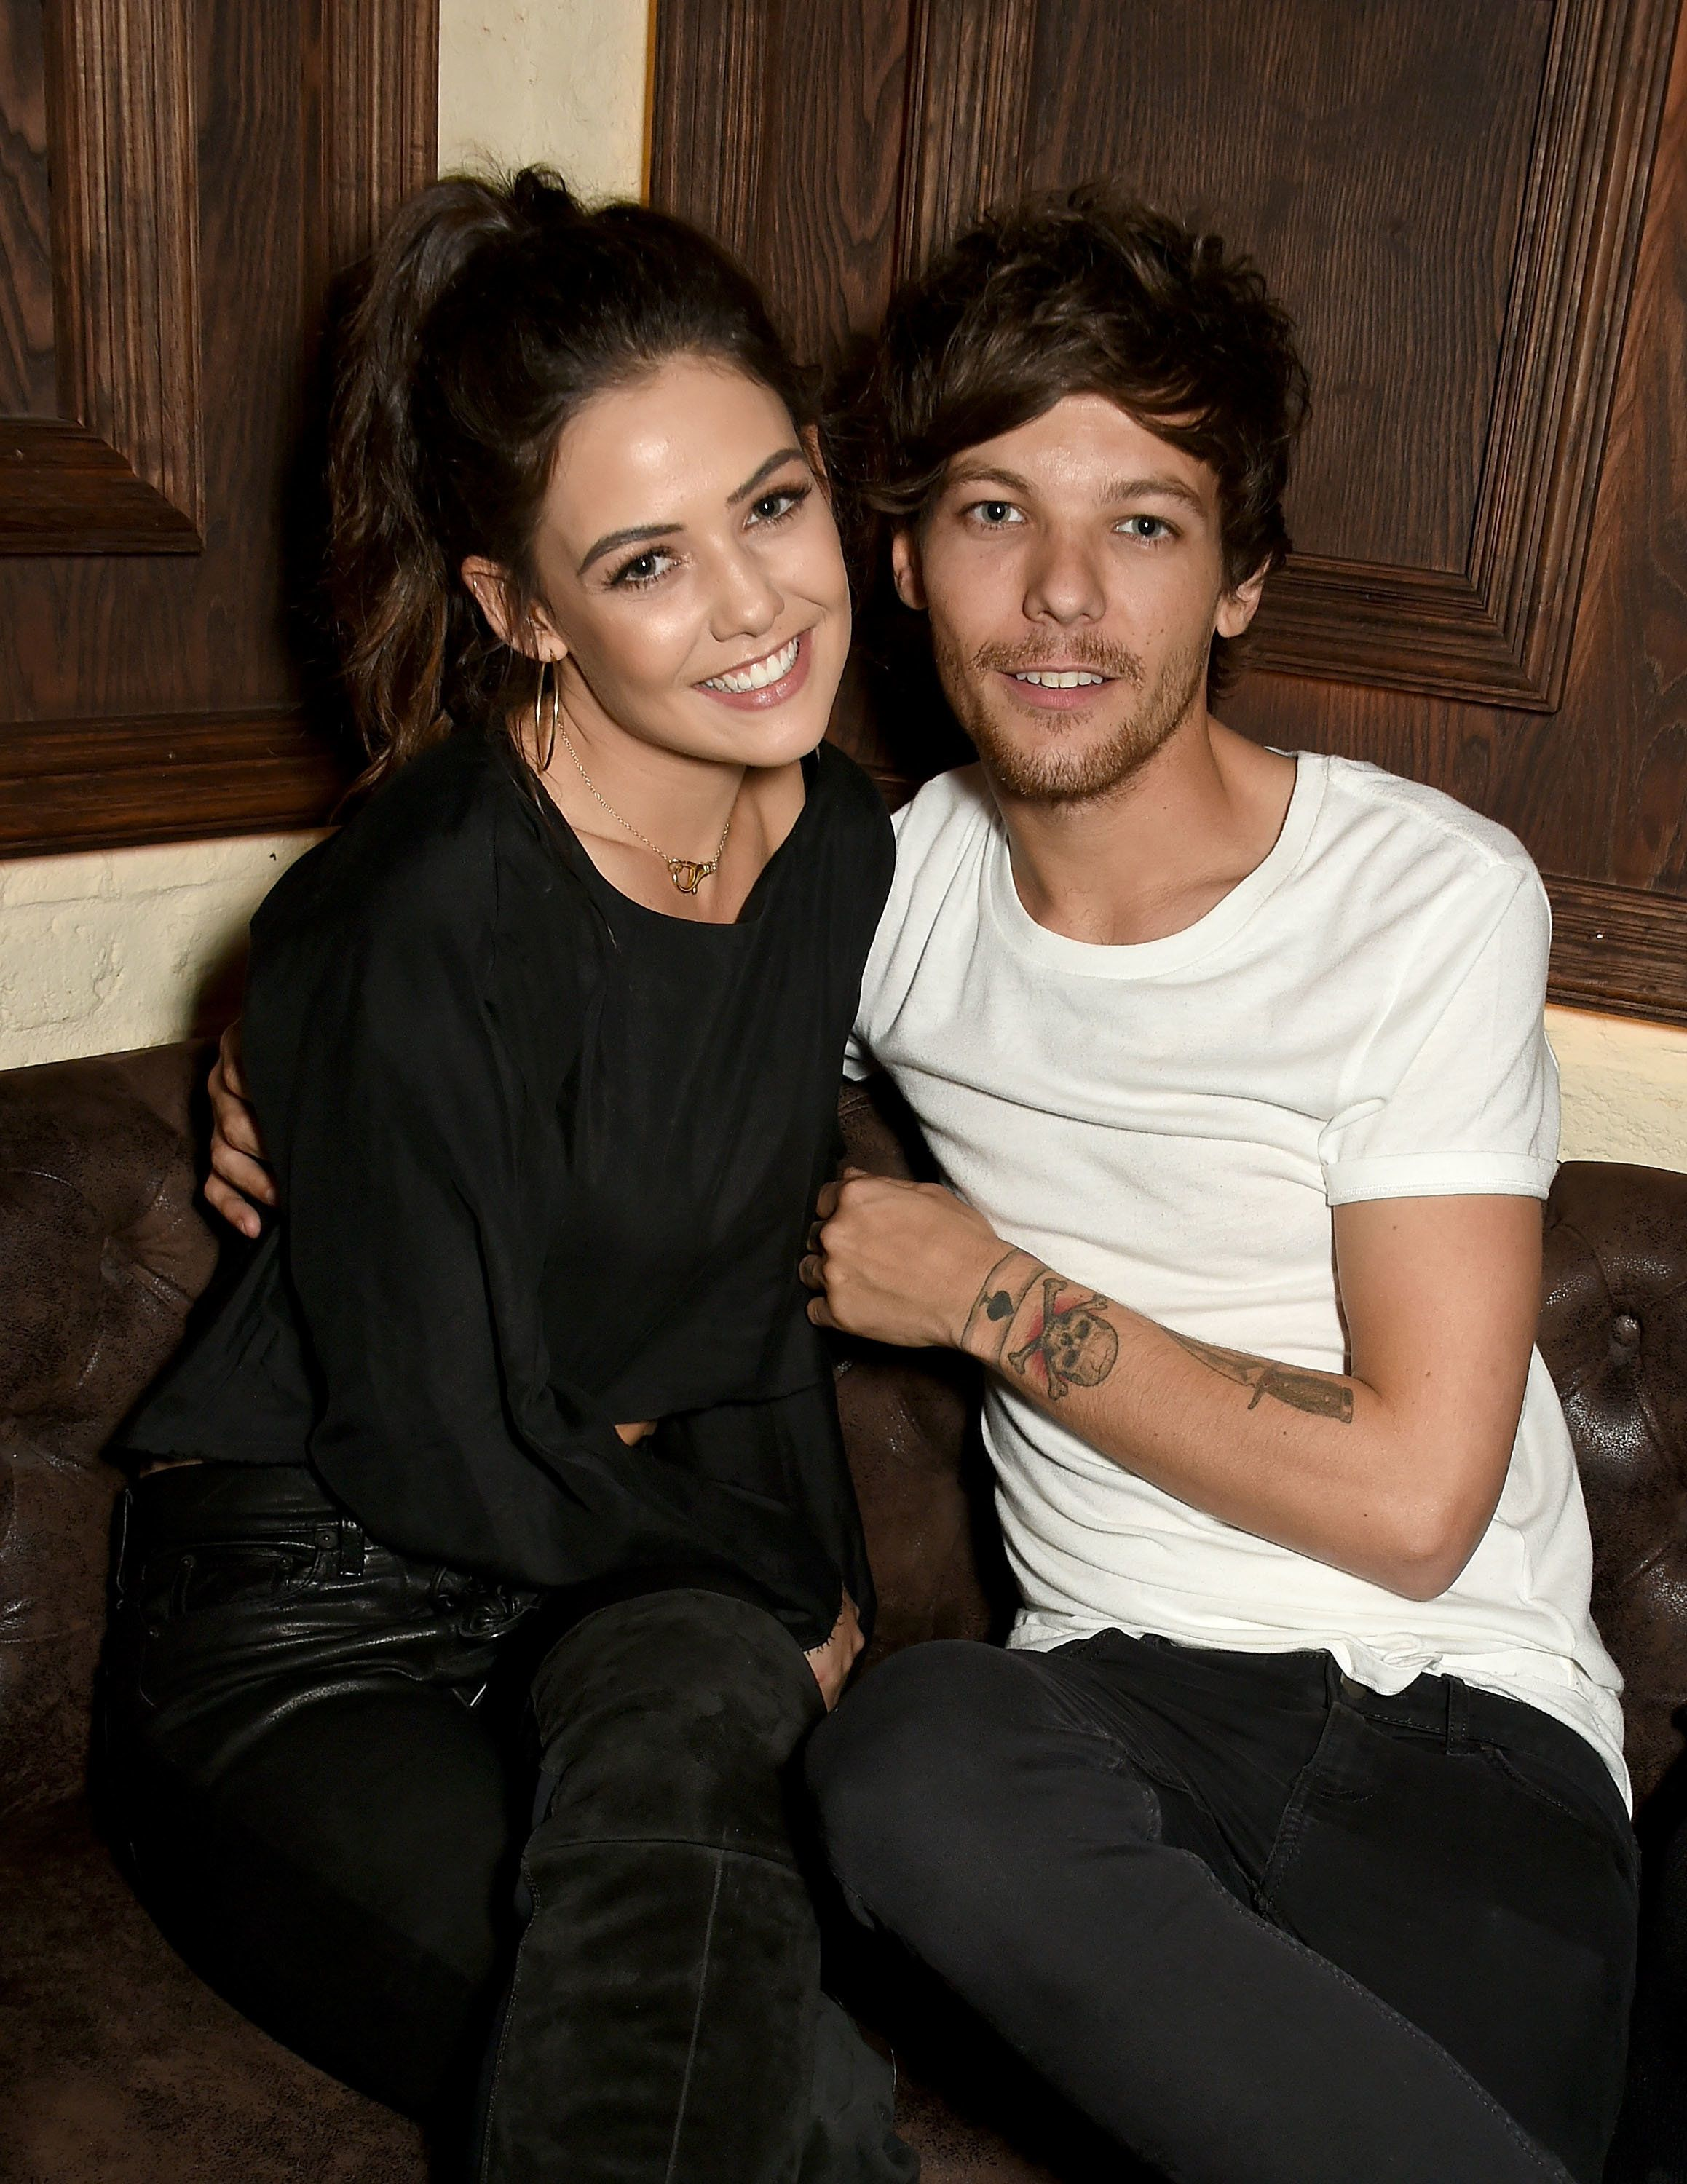 Louis Tomlinson 'Splits From Girlfriend Danielle Campbell', Just Weeks After Mother's